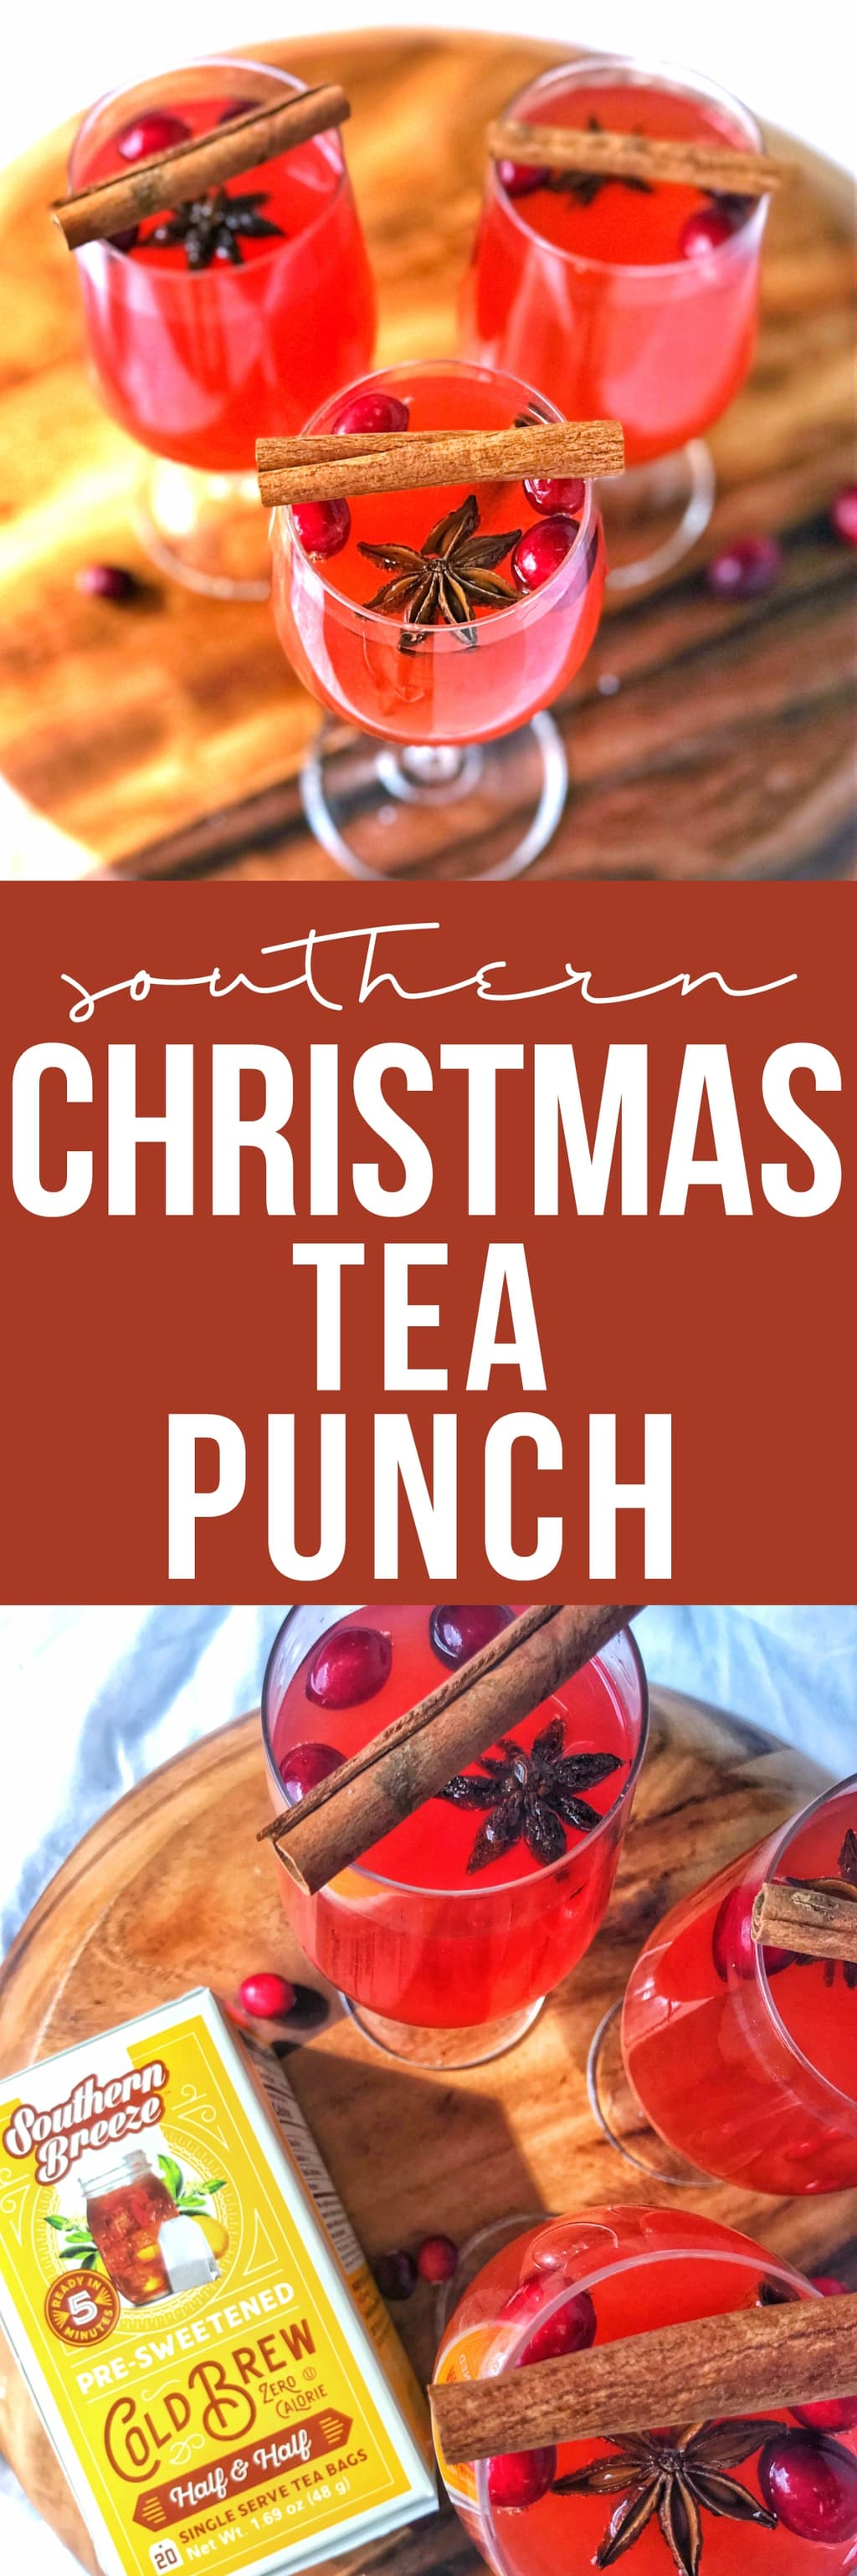 Christmas tea punch is an easy holiday drink made even easier using cold brew tea and plenty of holiday cheer with cranberries and sparkling cider.